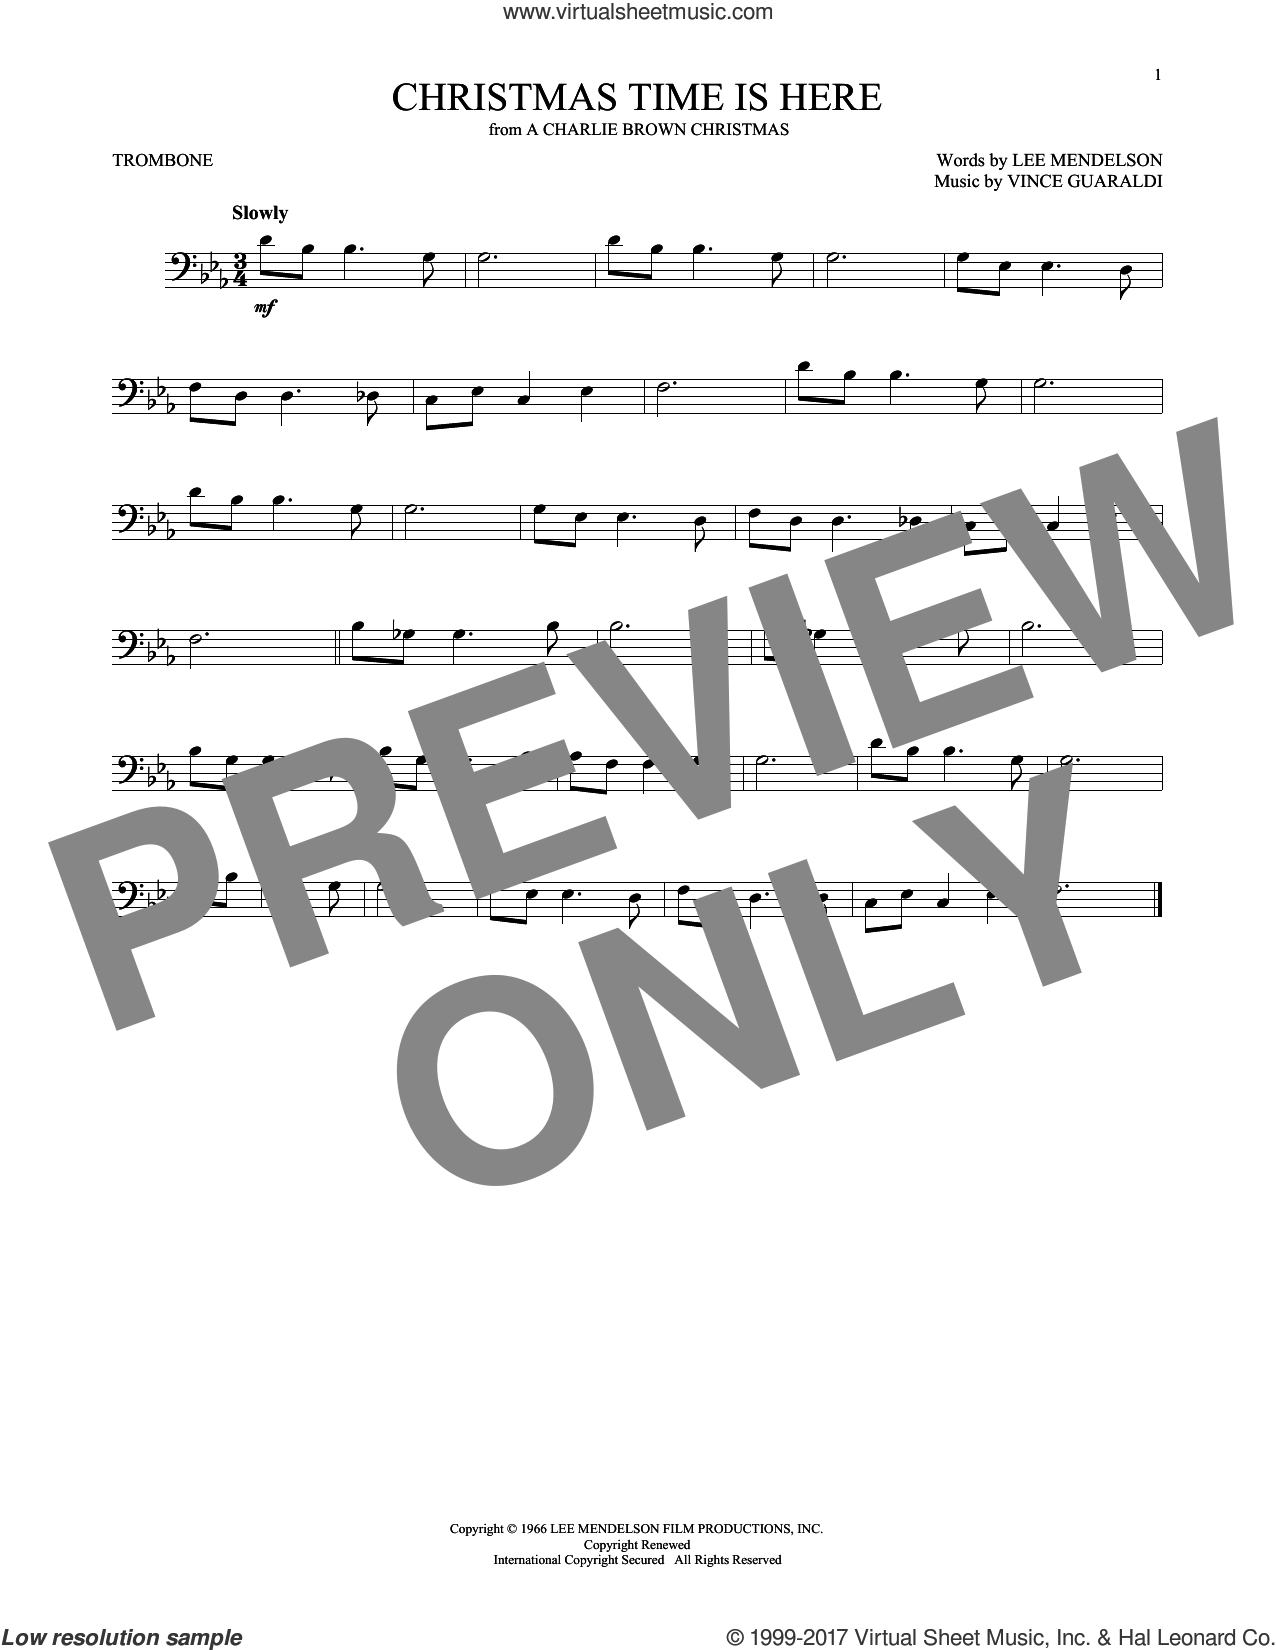 Christmas Time Is Here sheet music for trombone solo by Vince Guaraldi and Lee Mendelson, intermediate skill level